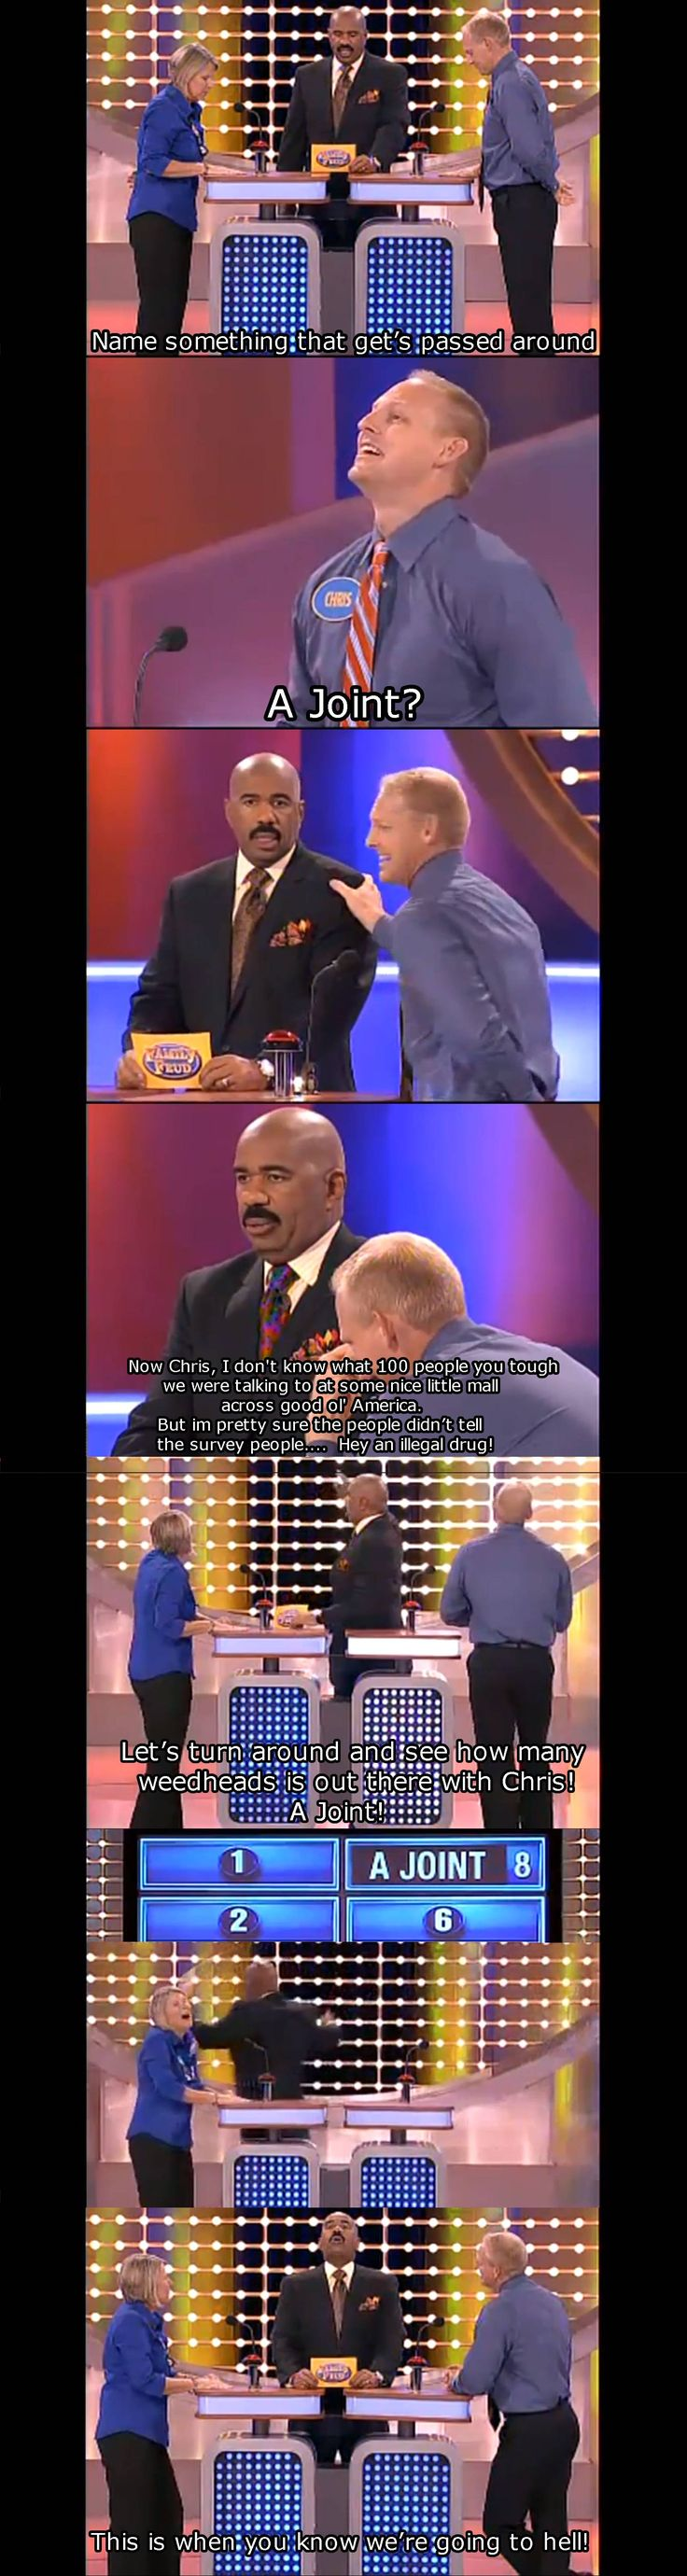 These moments with Steve Harvey get me EVERYTIME!!!!  Can't stop laughing!: Giggle, Steve Harvey, Familyfeud, Family Fued, Funny, Family Feud